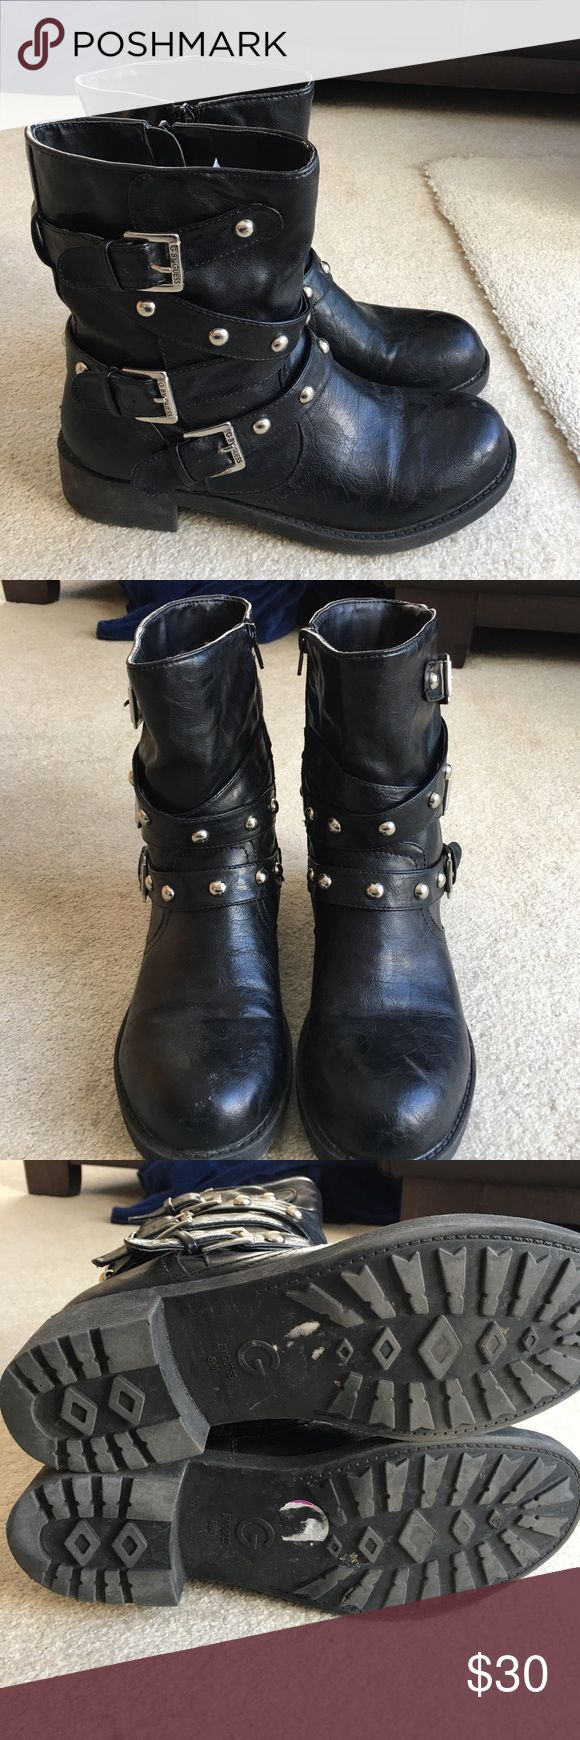 Black Moto Boots G by Guess black moto boots with buckles and studs. Boots have a side zipper for easy on and off. Worn only a few times, the heels have a little wear to them. No box. G by Guess Shoes Combat & Moto Boots